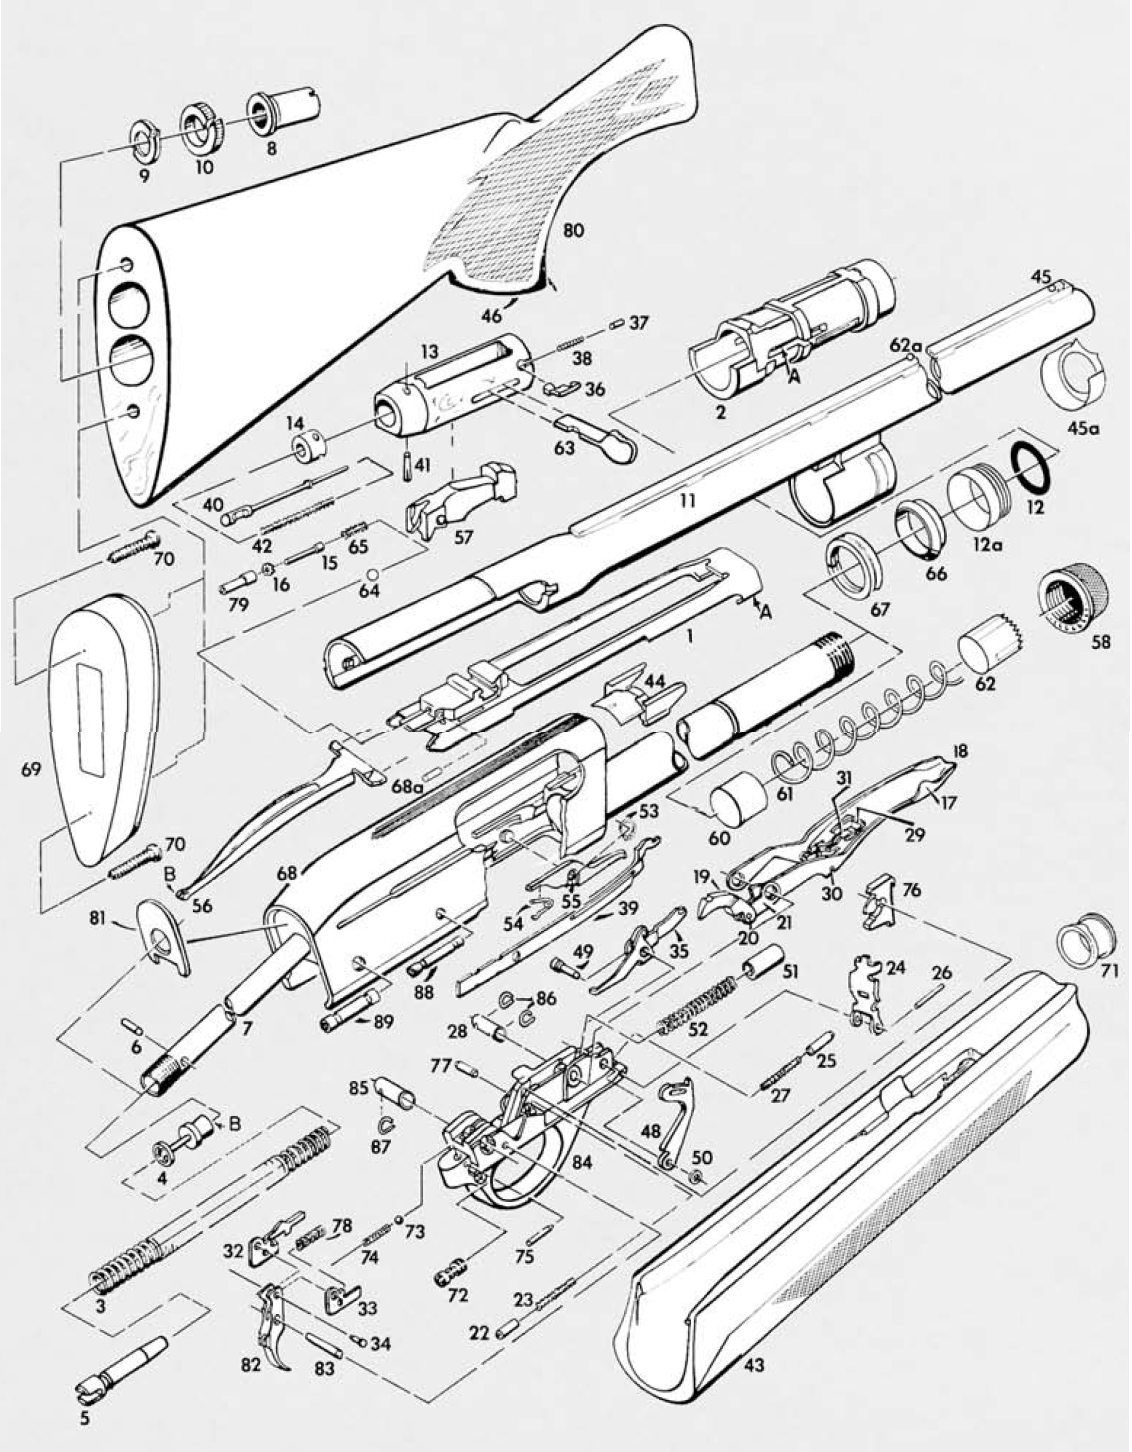 Remington 1100 Parts Diagram Great Installation Of Wiring 870 Model Exploded View Pinterest Guns Rh Com Disassembly